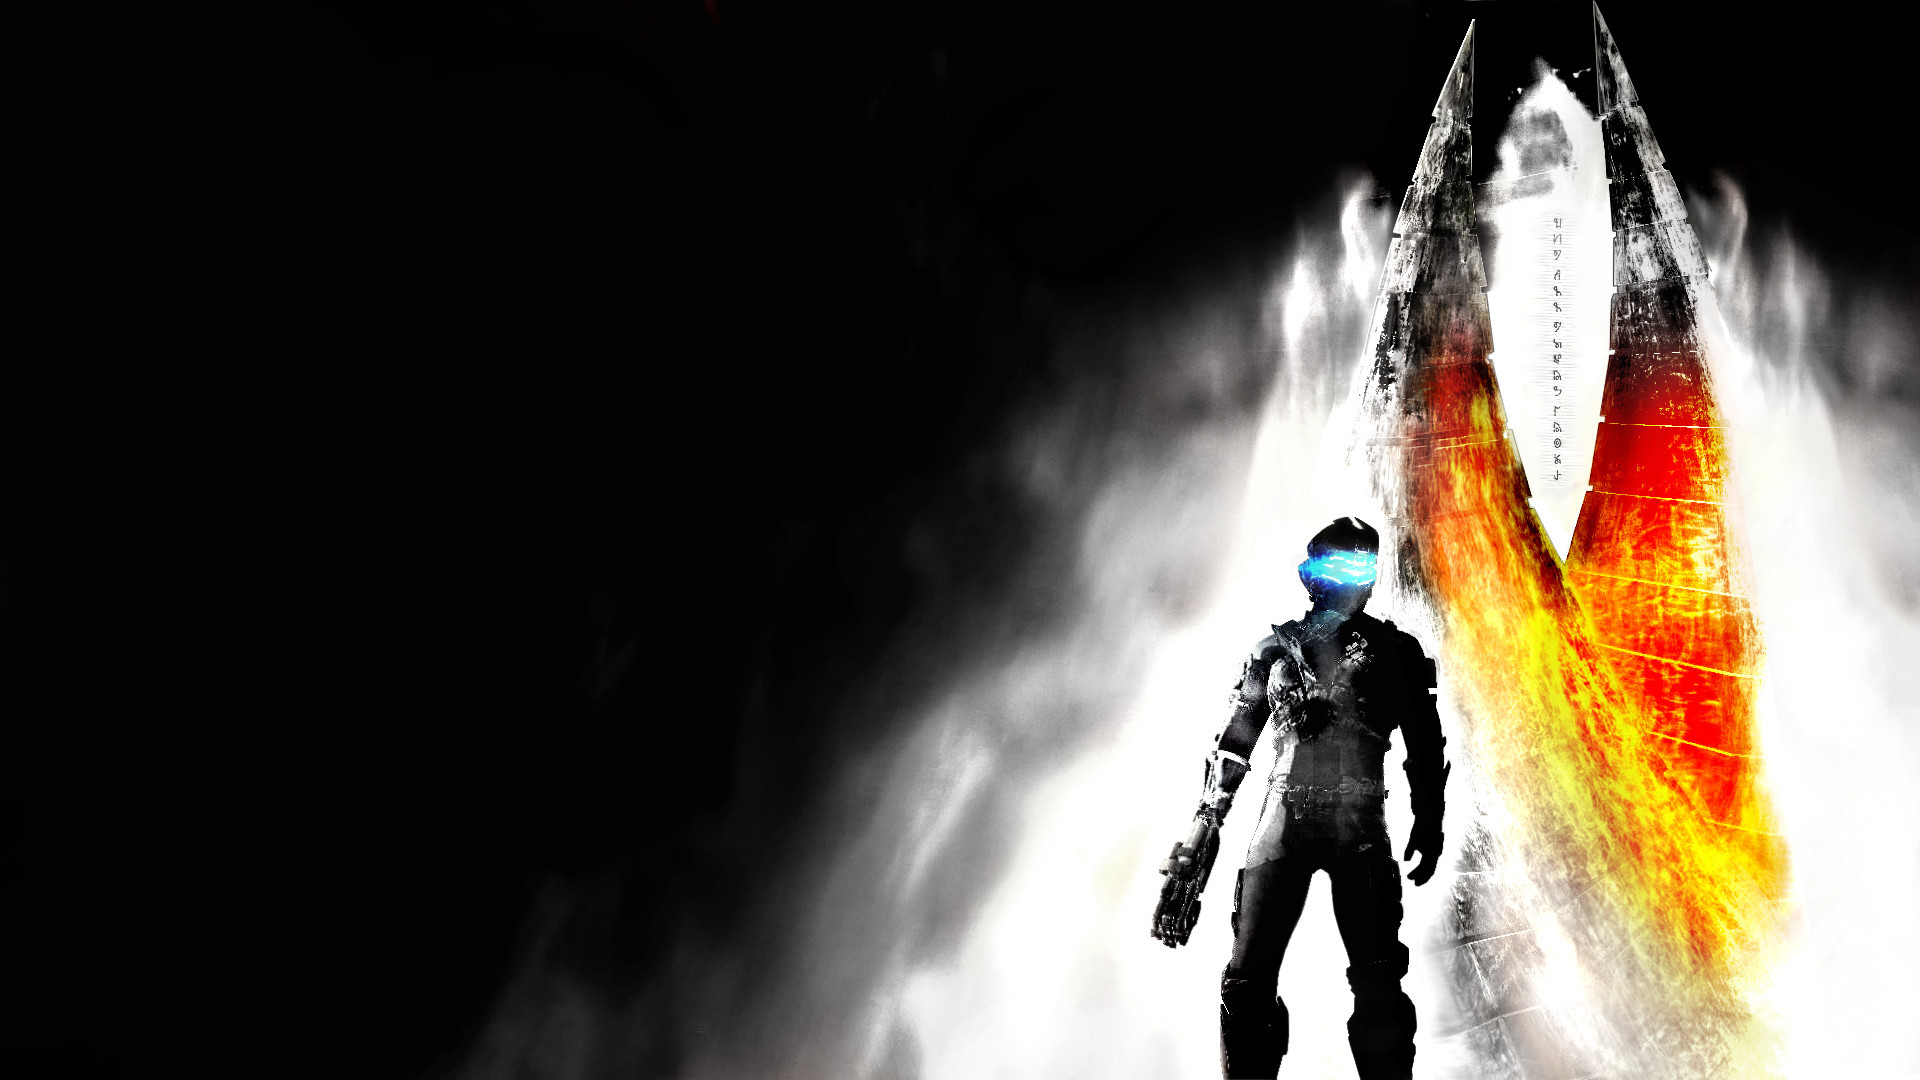 1920x1080 1920x1200 Free Wallpapers - Dead Space 2 Wallpaper